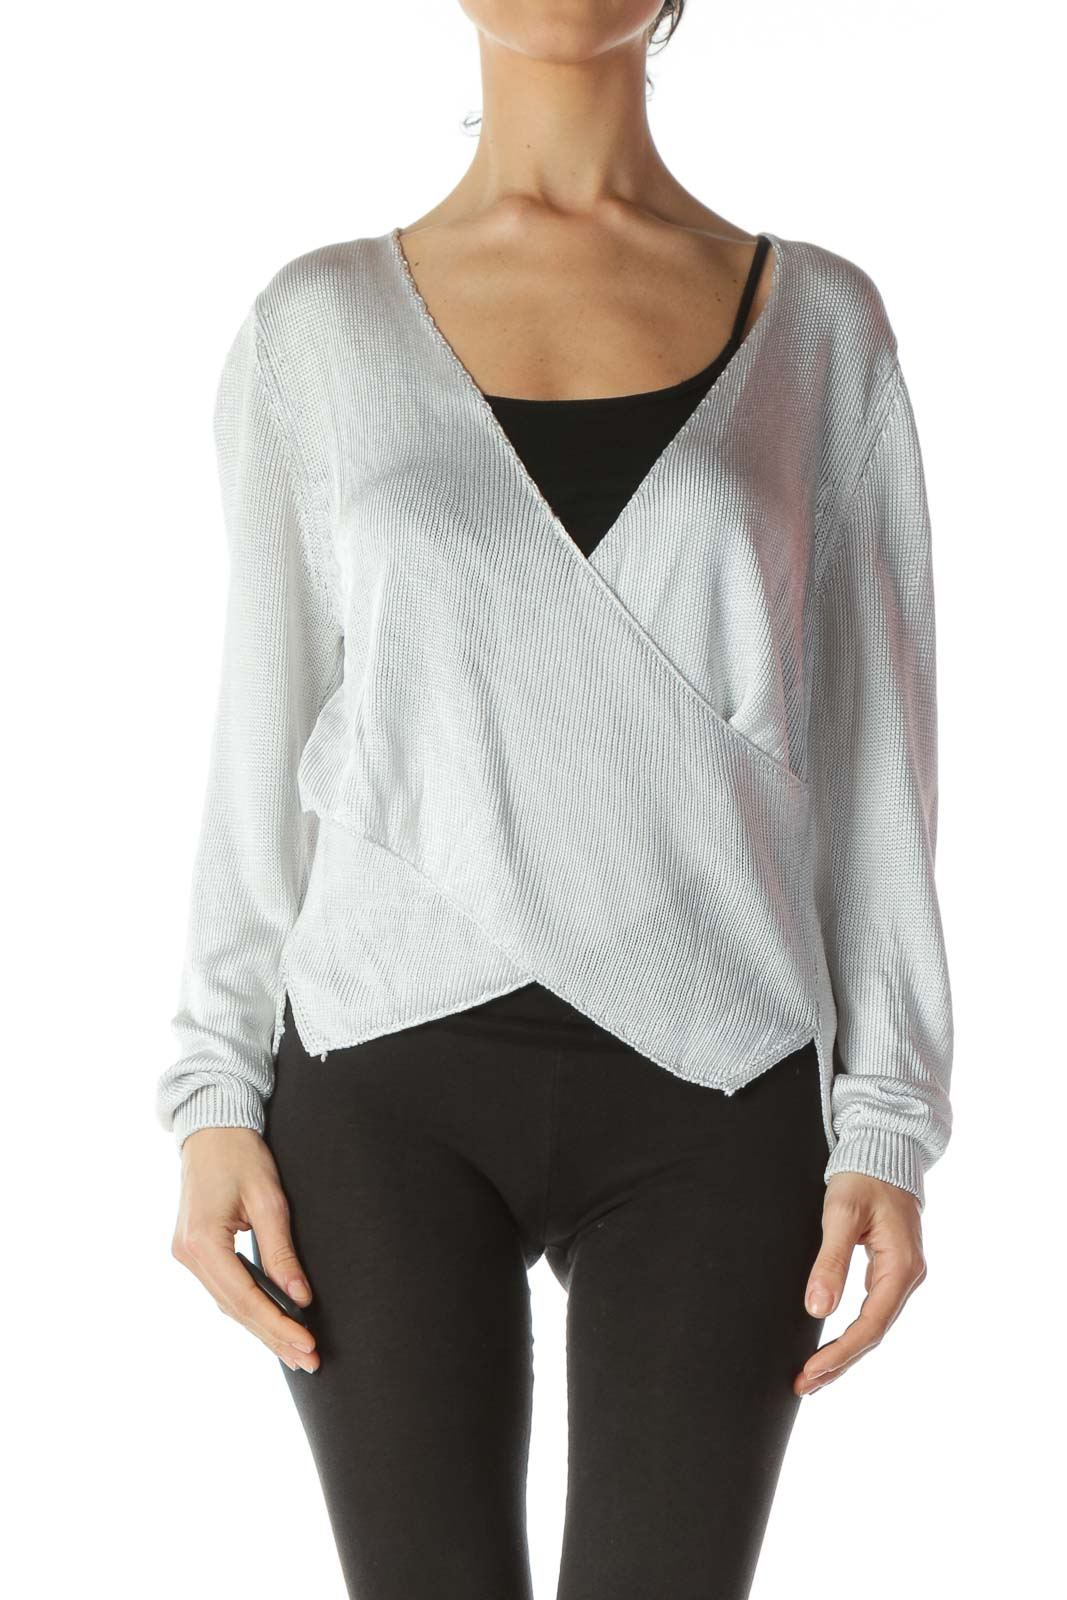 Silver V-Neck Wrap See-Through Knit Top Front